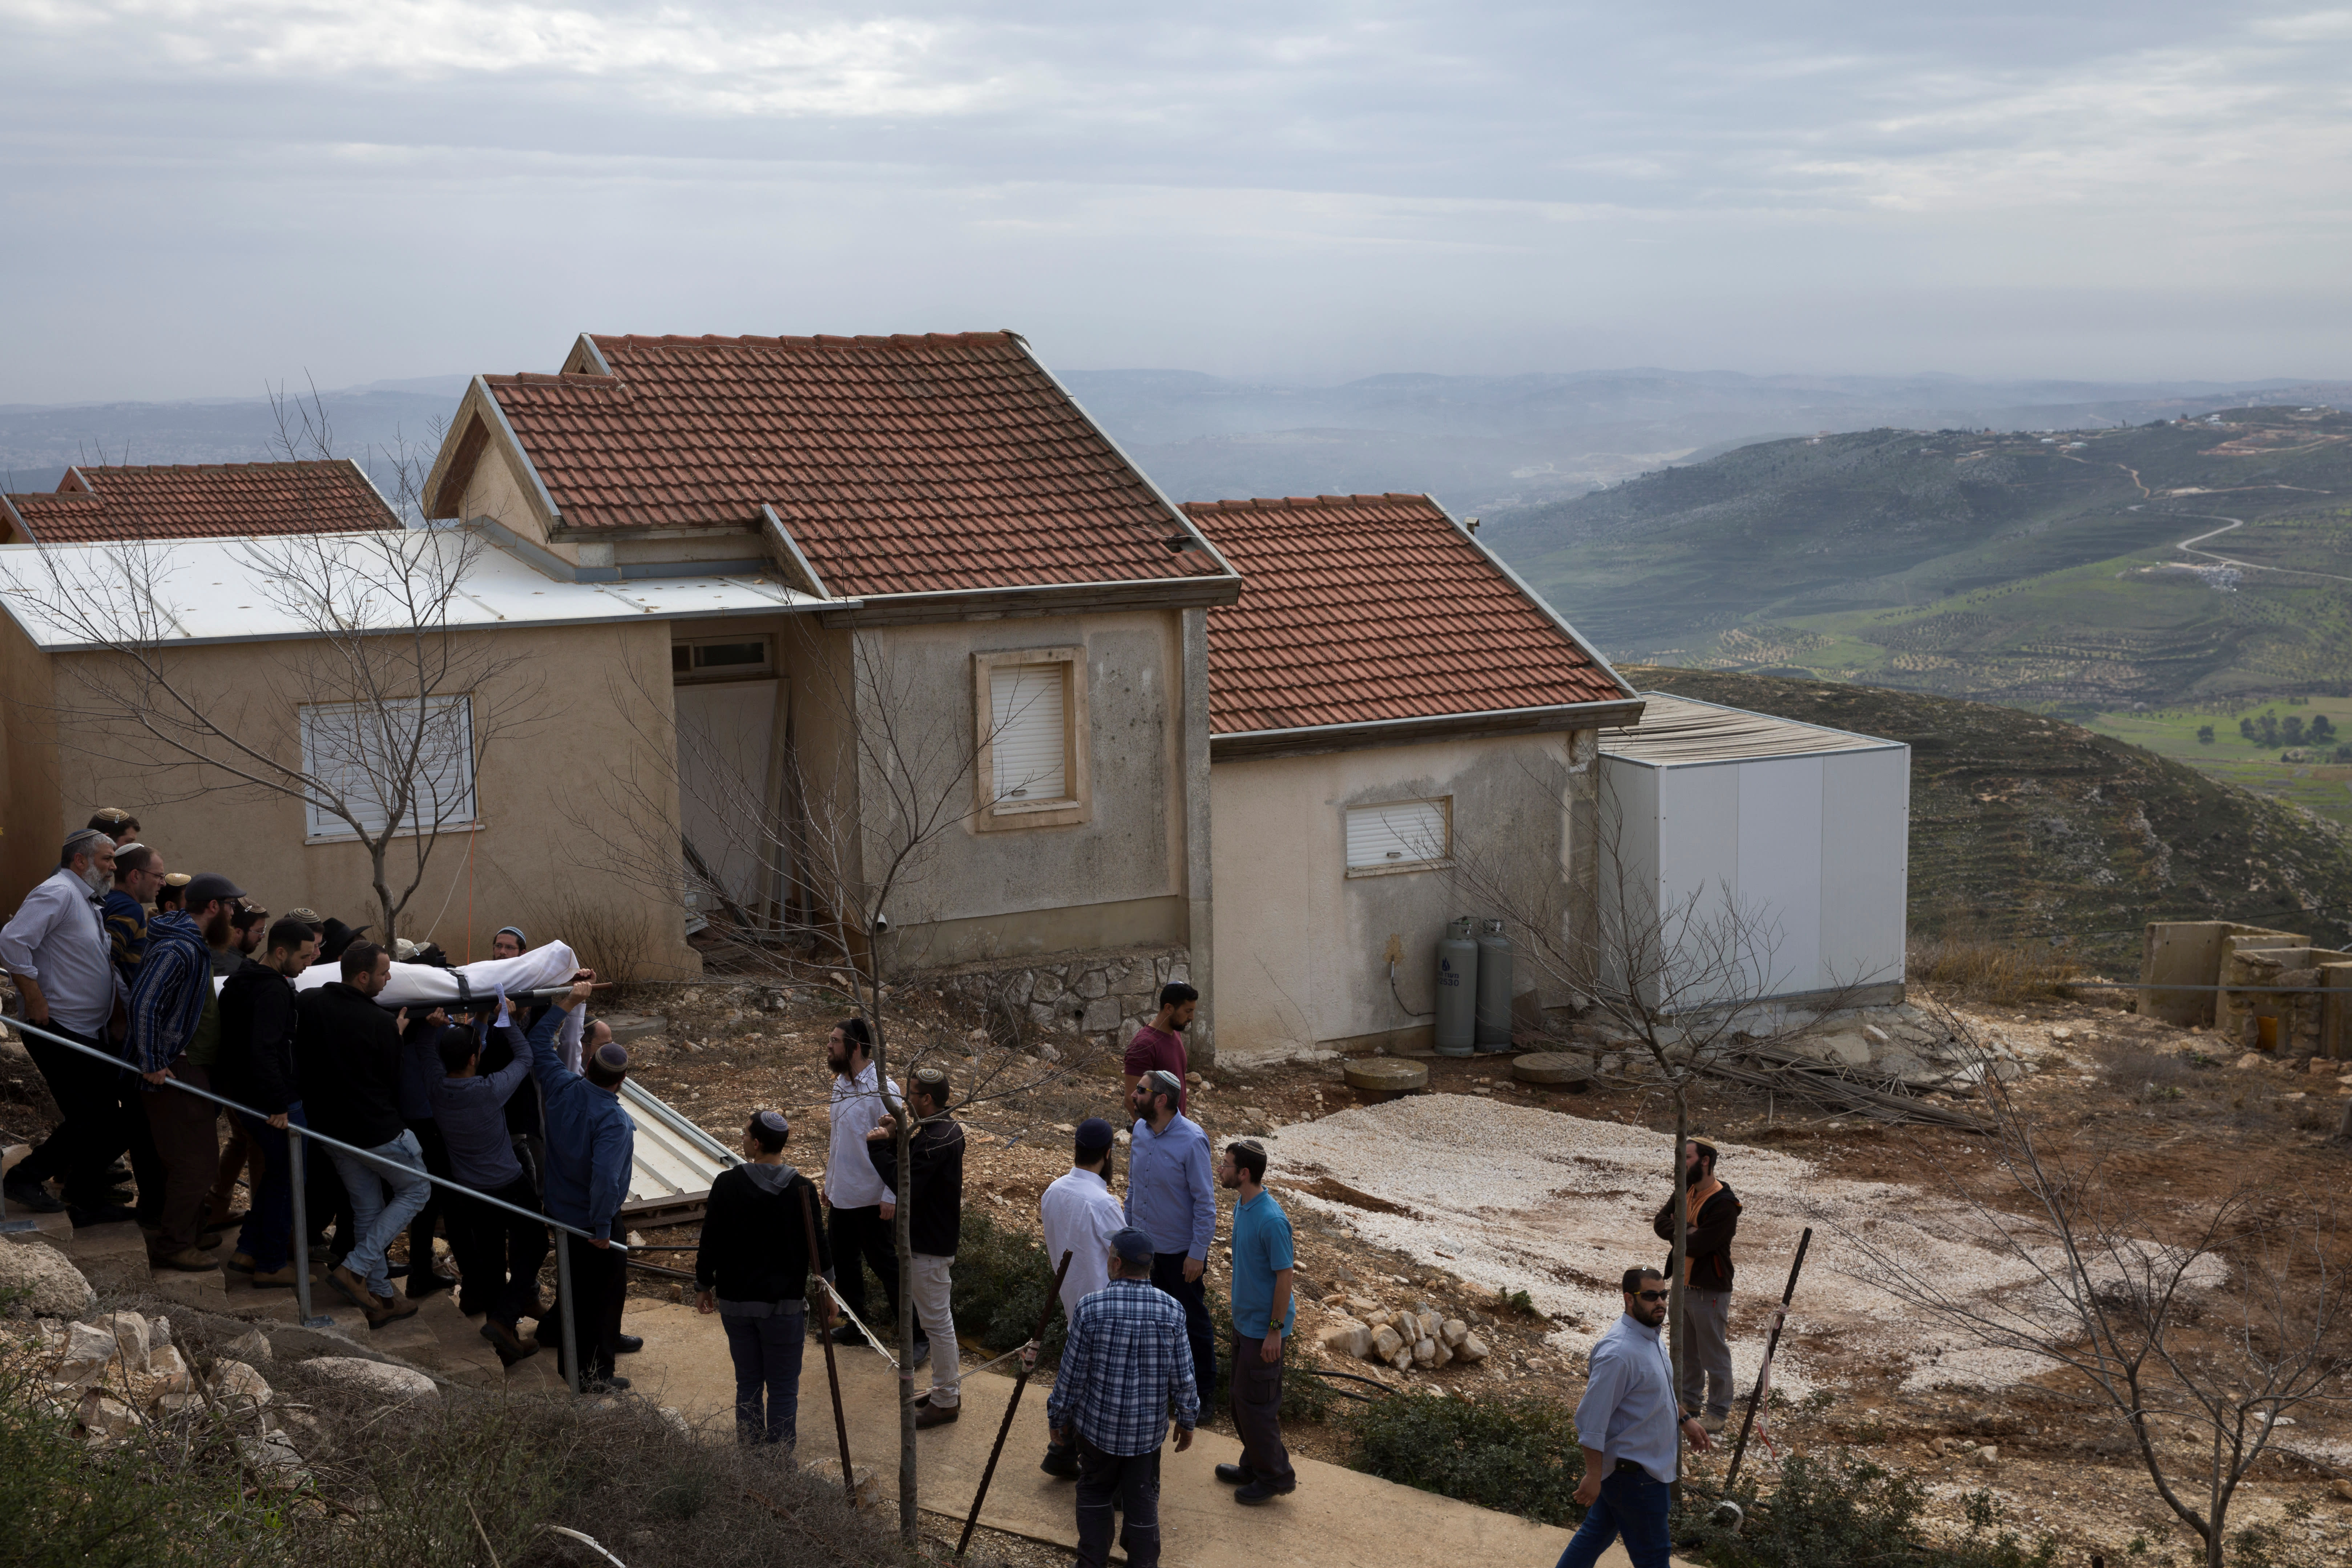 Relatives and friends carry the body of Itamar Ben Gal during his funeral in the Jewish settlement of Har Bracha in the West Bank, February 6, 2018. (Reuters/Jim Hollander/Pool)